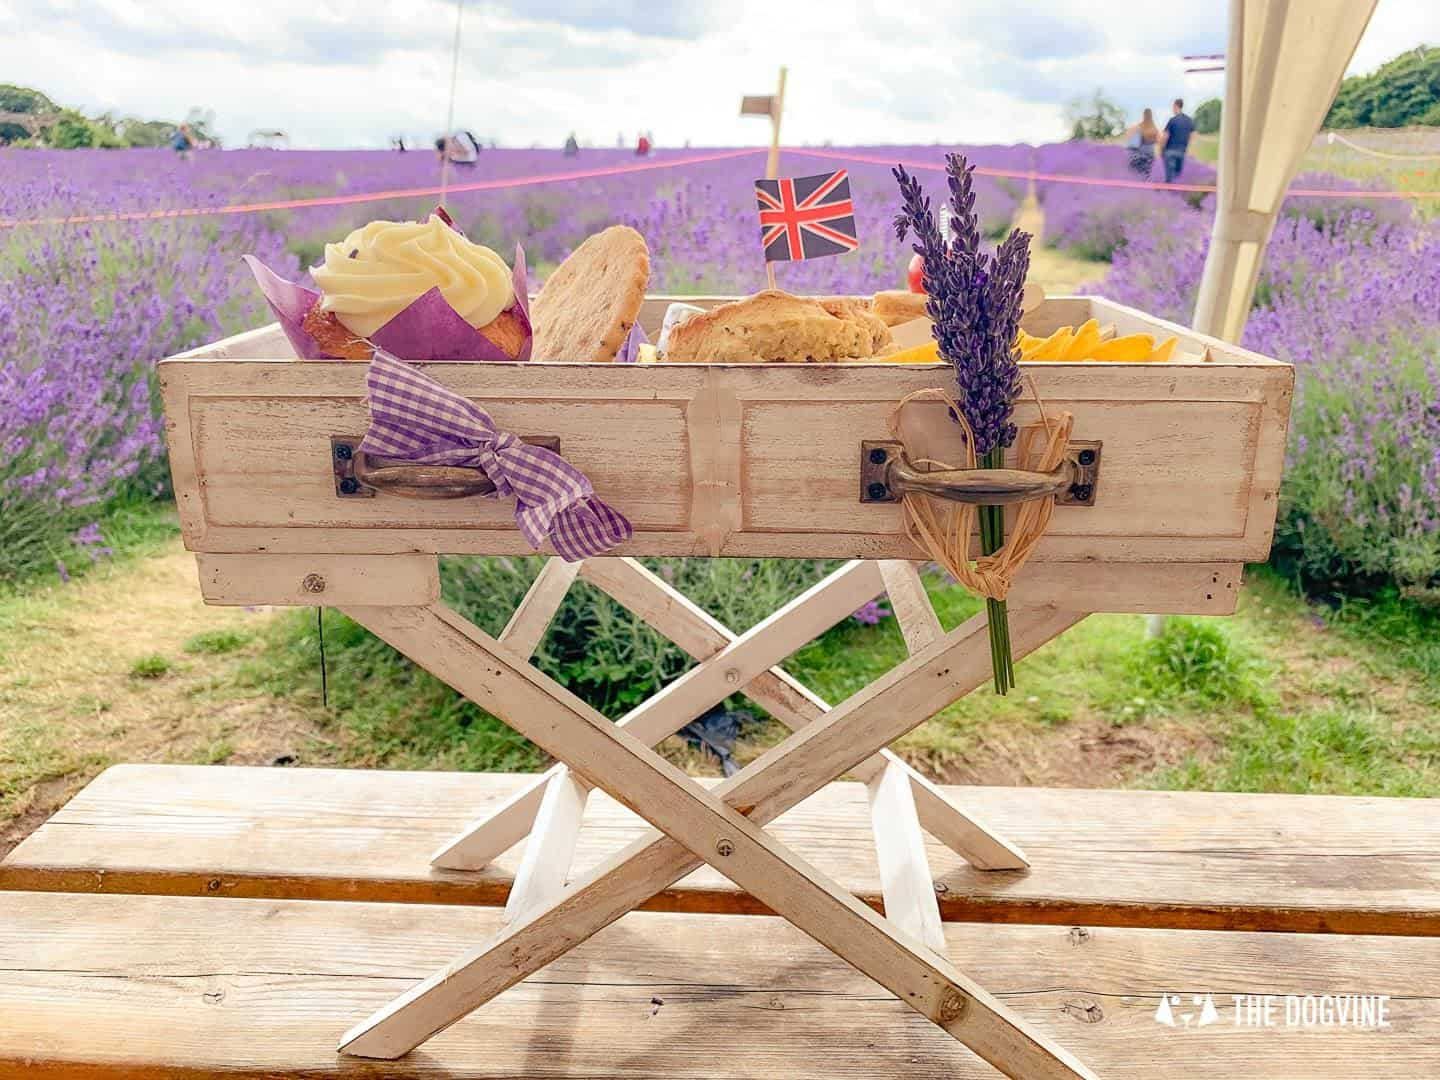 Dog-friendly Mayfield Lavender Farm - Afternoon Tea